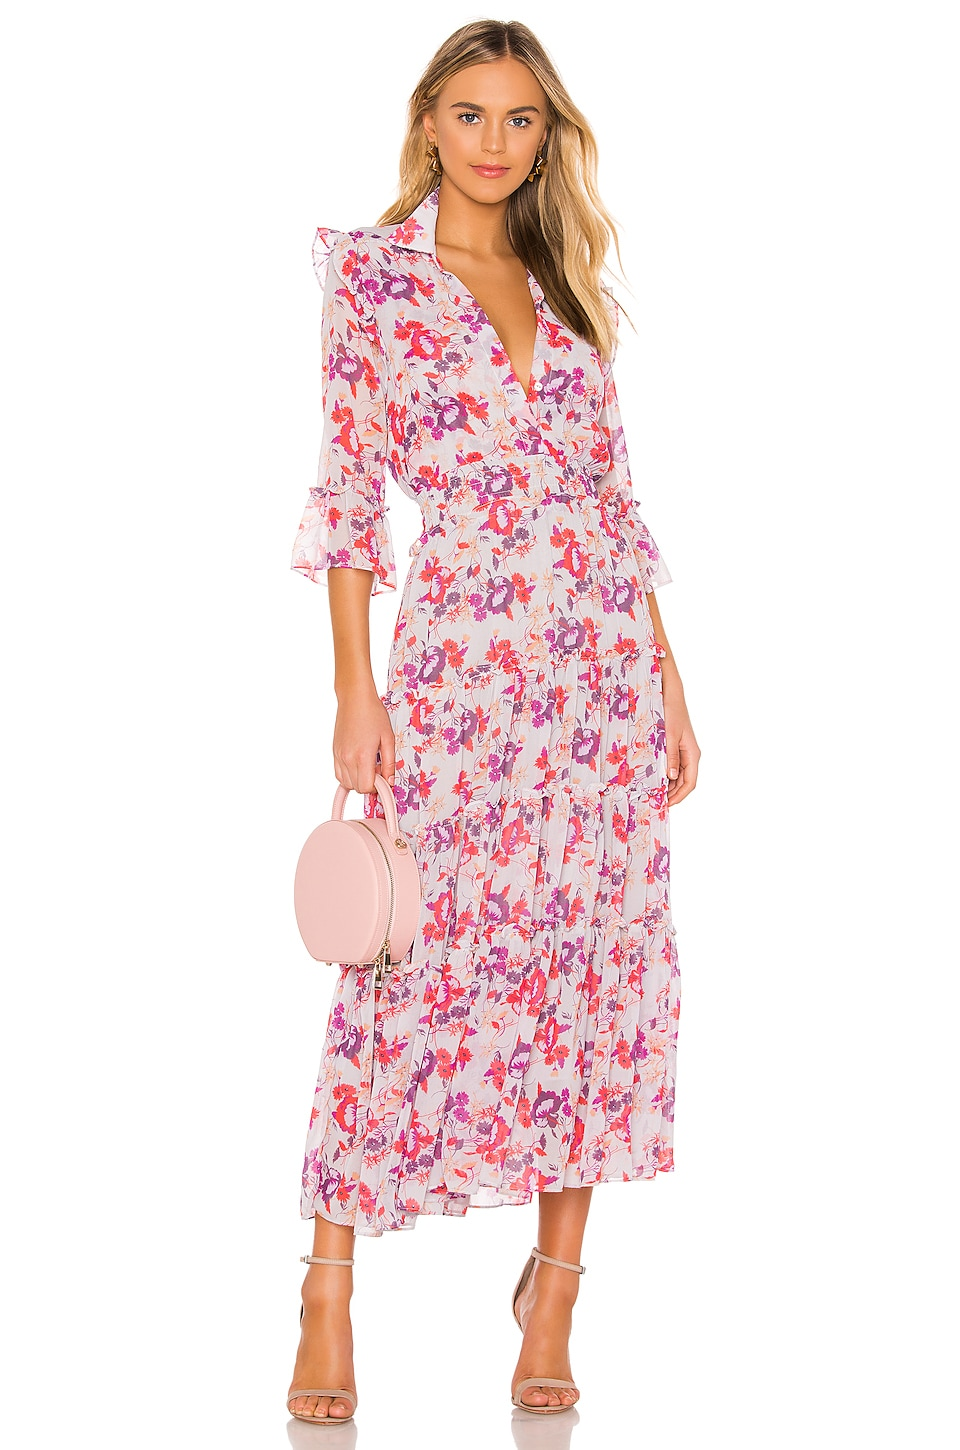 MISA Los Angeles Pamelina Dress in Lilac Floral